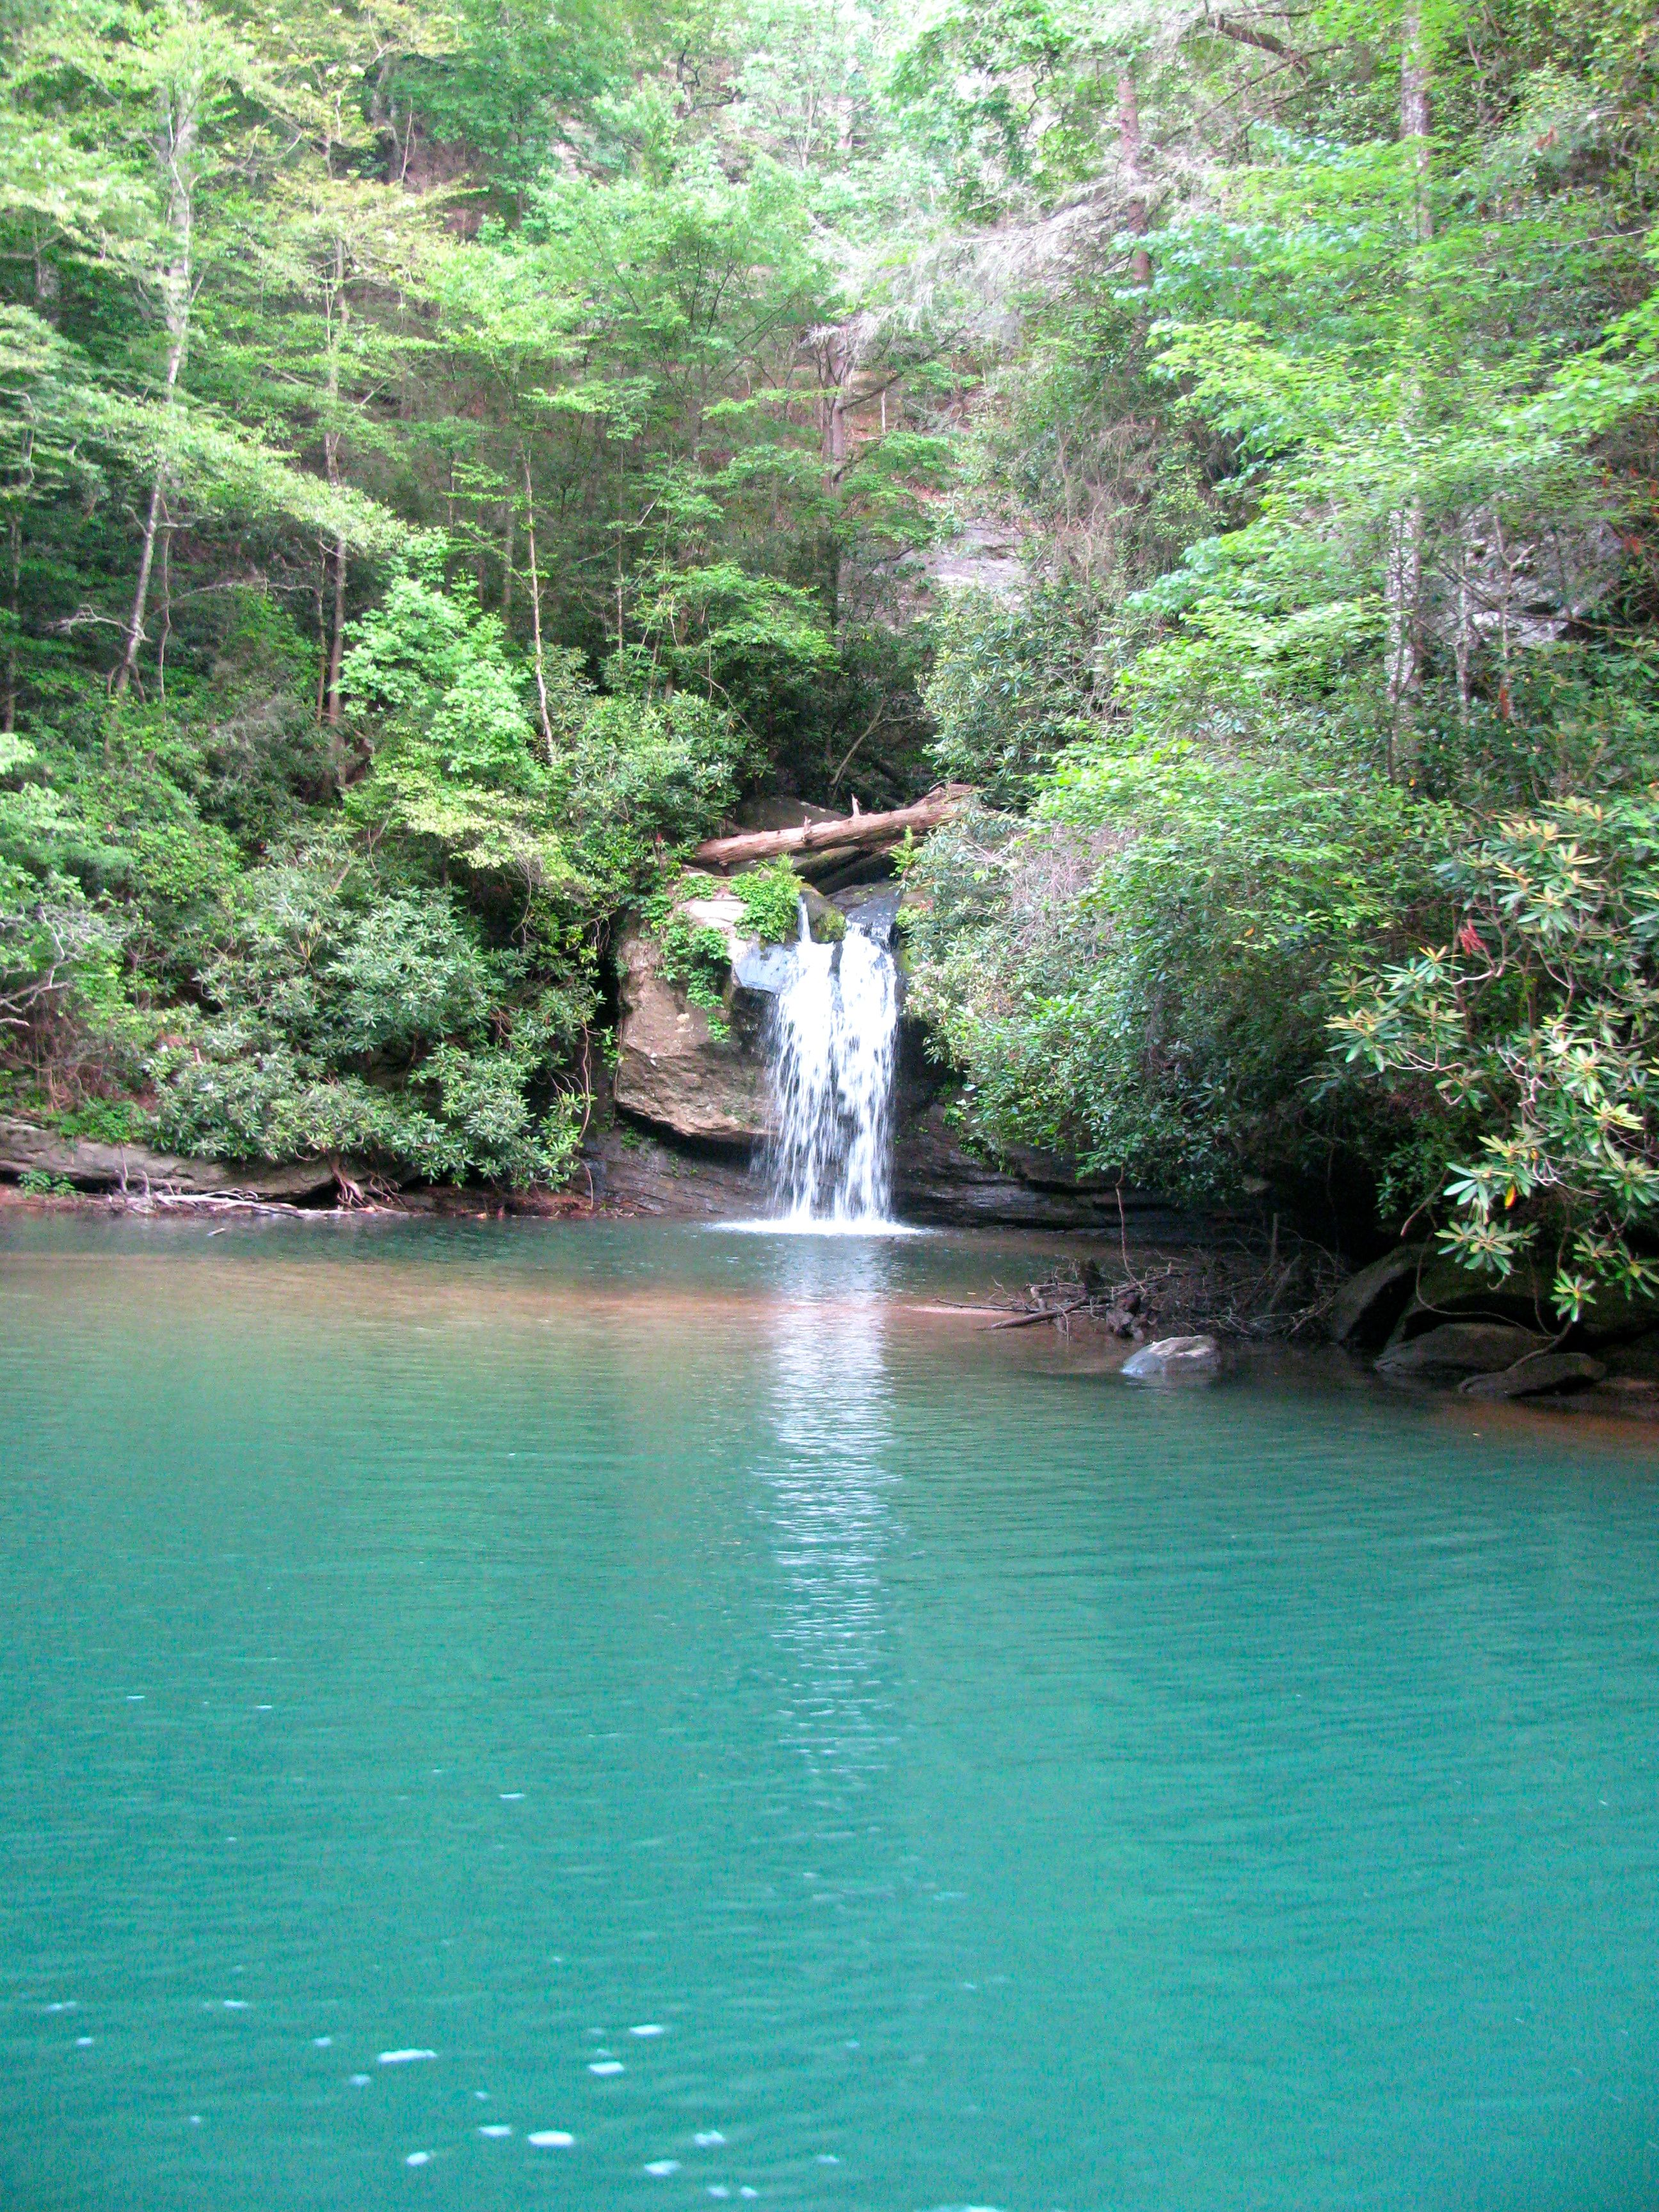 Lake Jocassee Sc My Friends And I Spent Lots Of Fun Hours Searching This Lake For Its Many Beau South Carolina Vacation South Carolina Travel Travel South